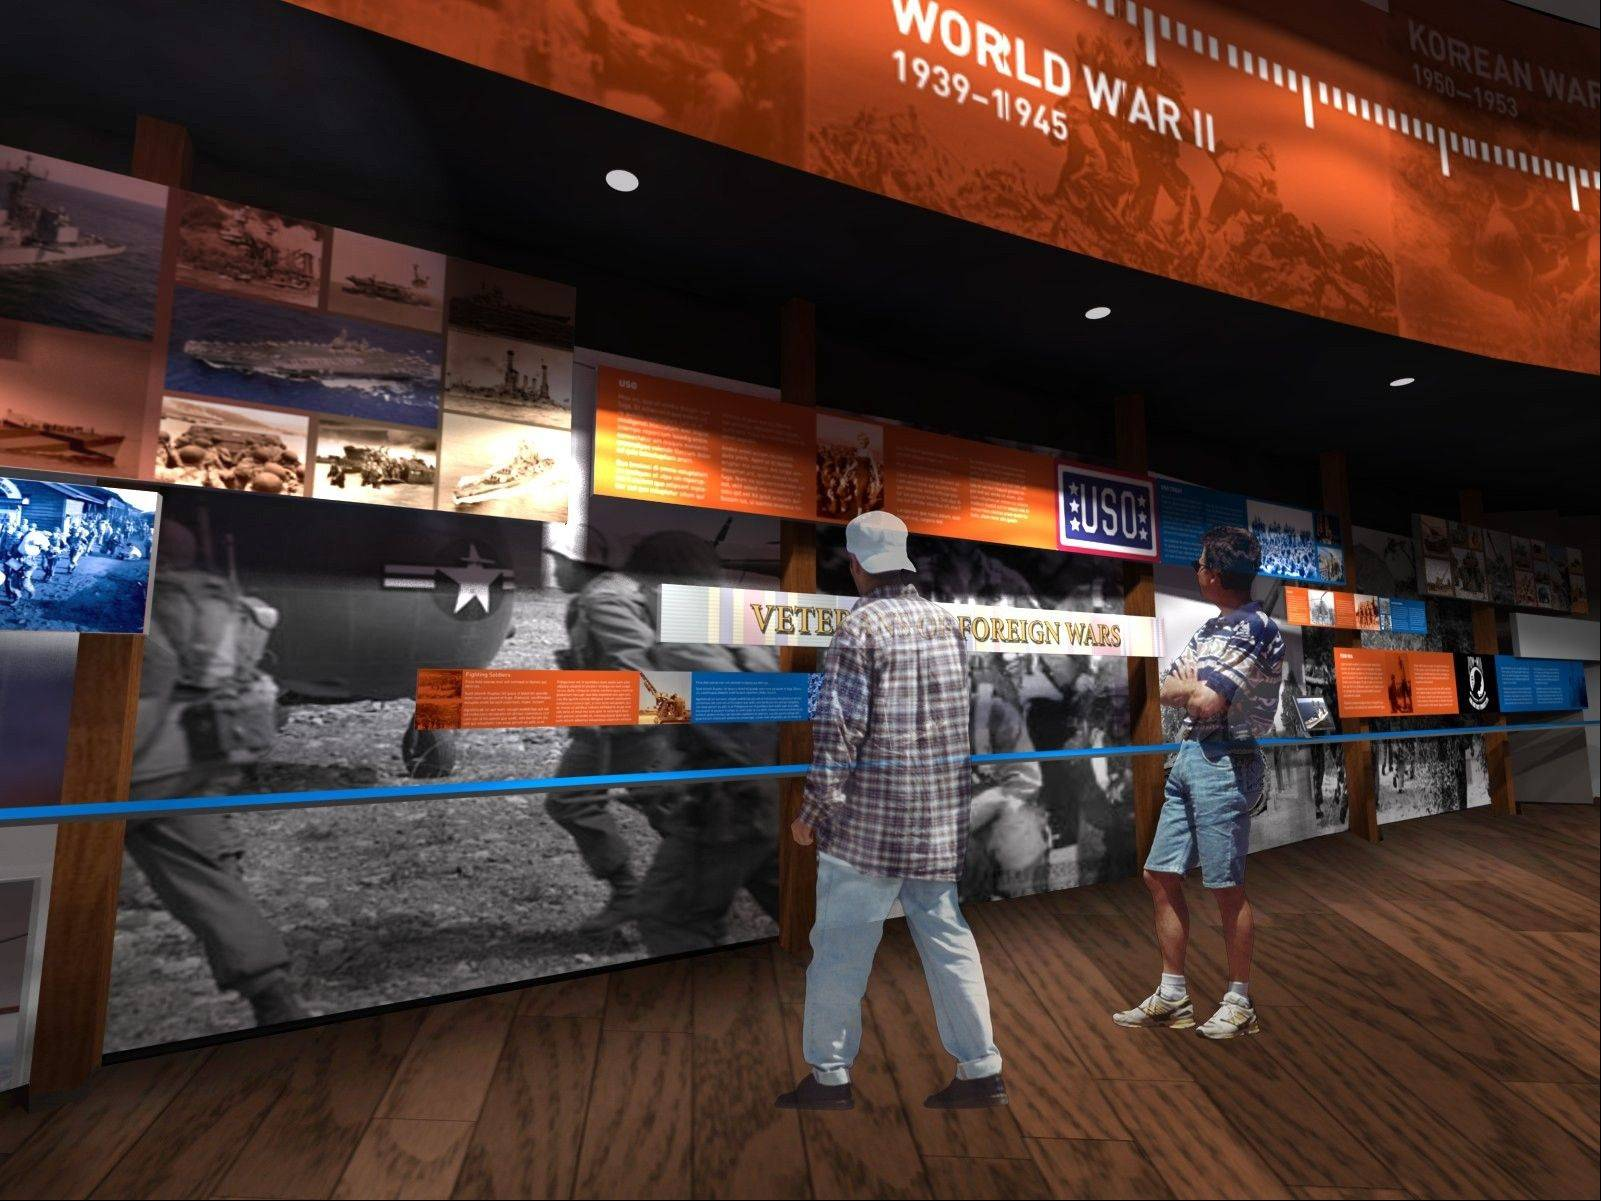 Entertainer has proposal for national veterans museum in Hoffman Estates